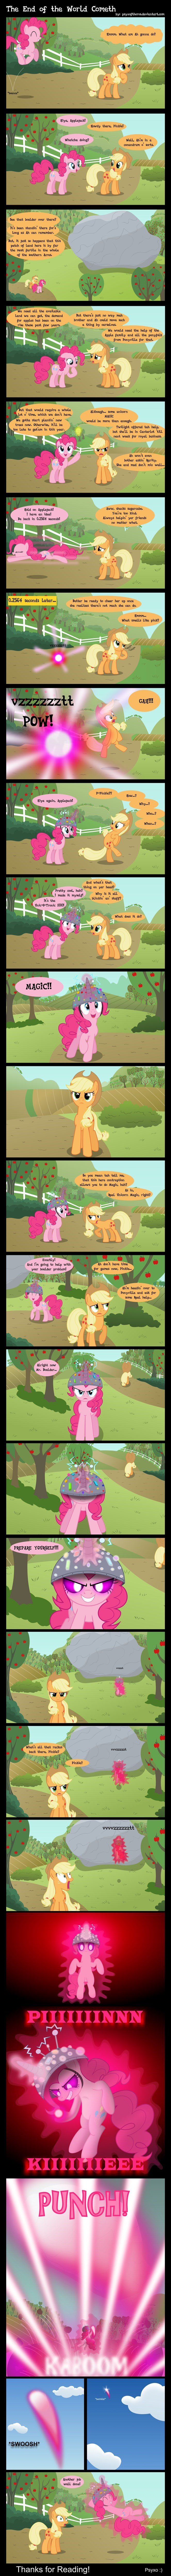 applejack pinkie pie comic - 8996011776